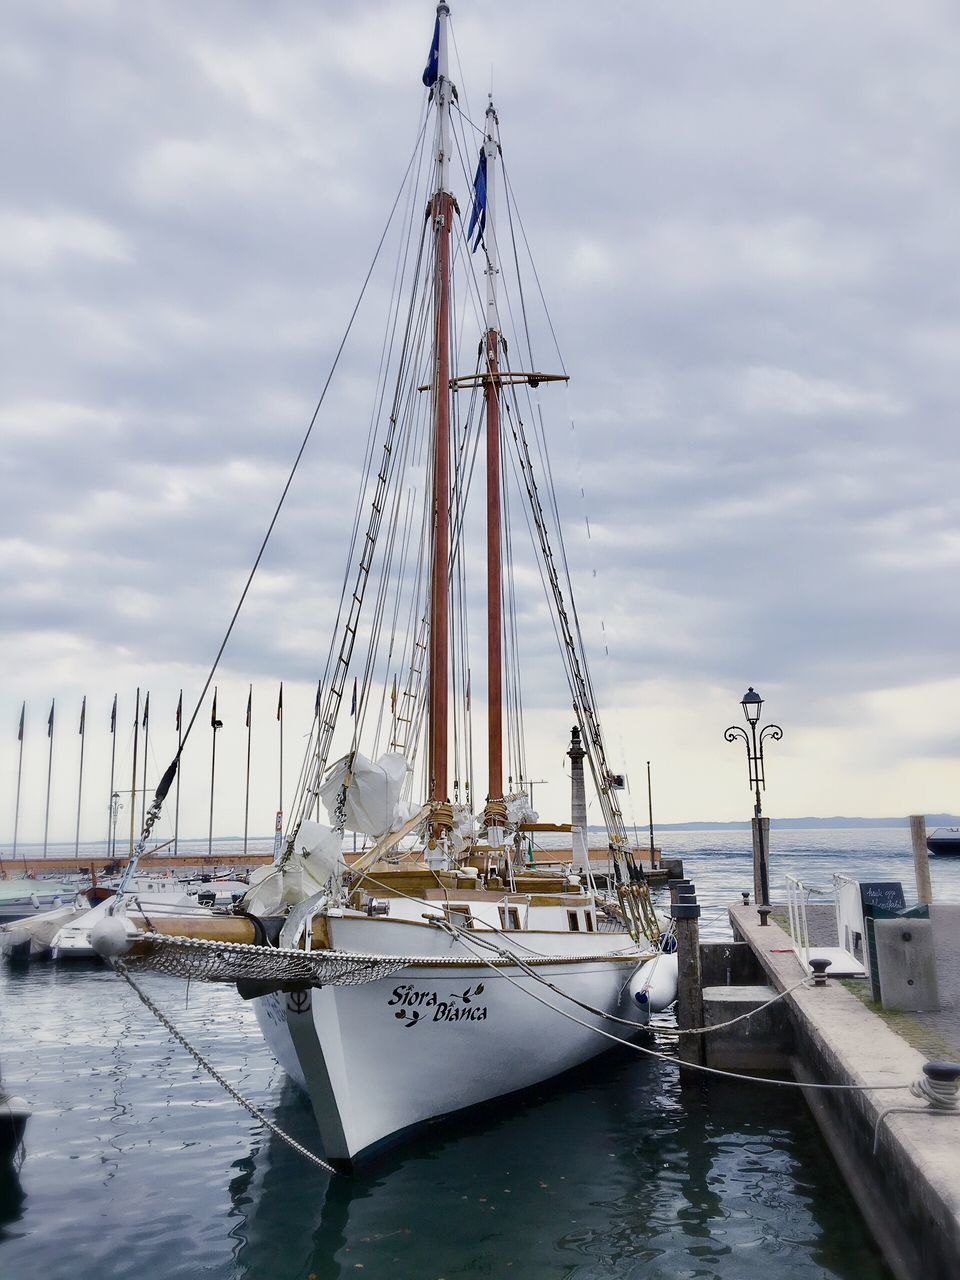 nautical vessel, transportation, mode of transport, moored, cloud - sky, sky, boat, mast, water, no people, outdoors, harbor, sea, day, nature, sailboat, tall ship, sailing ship